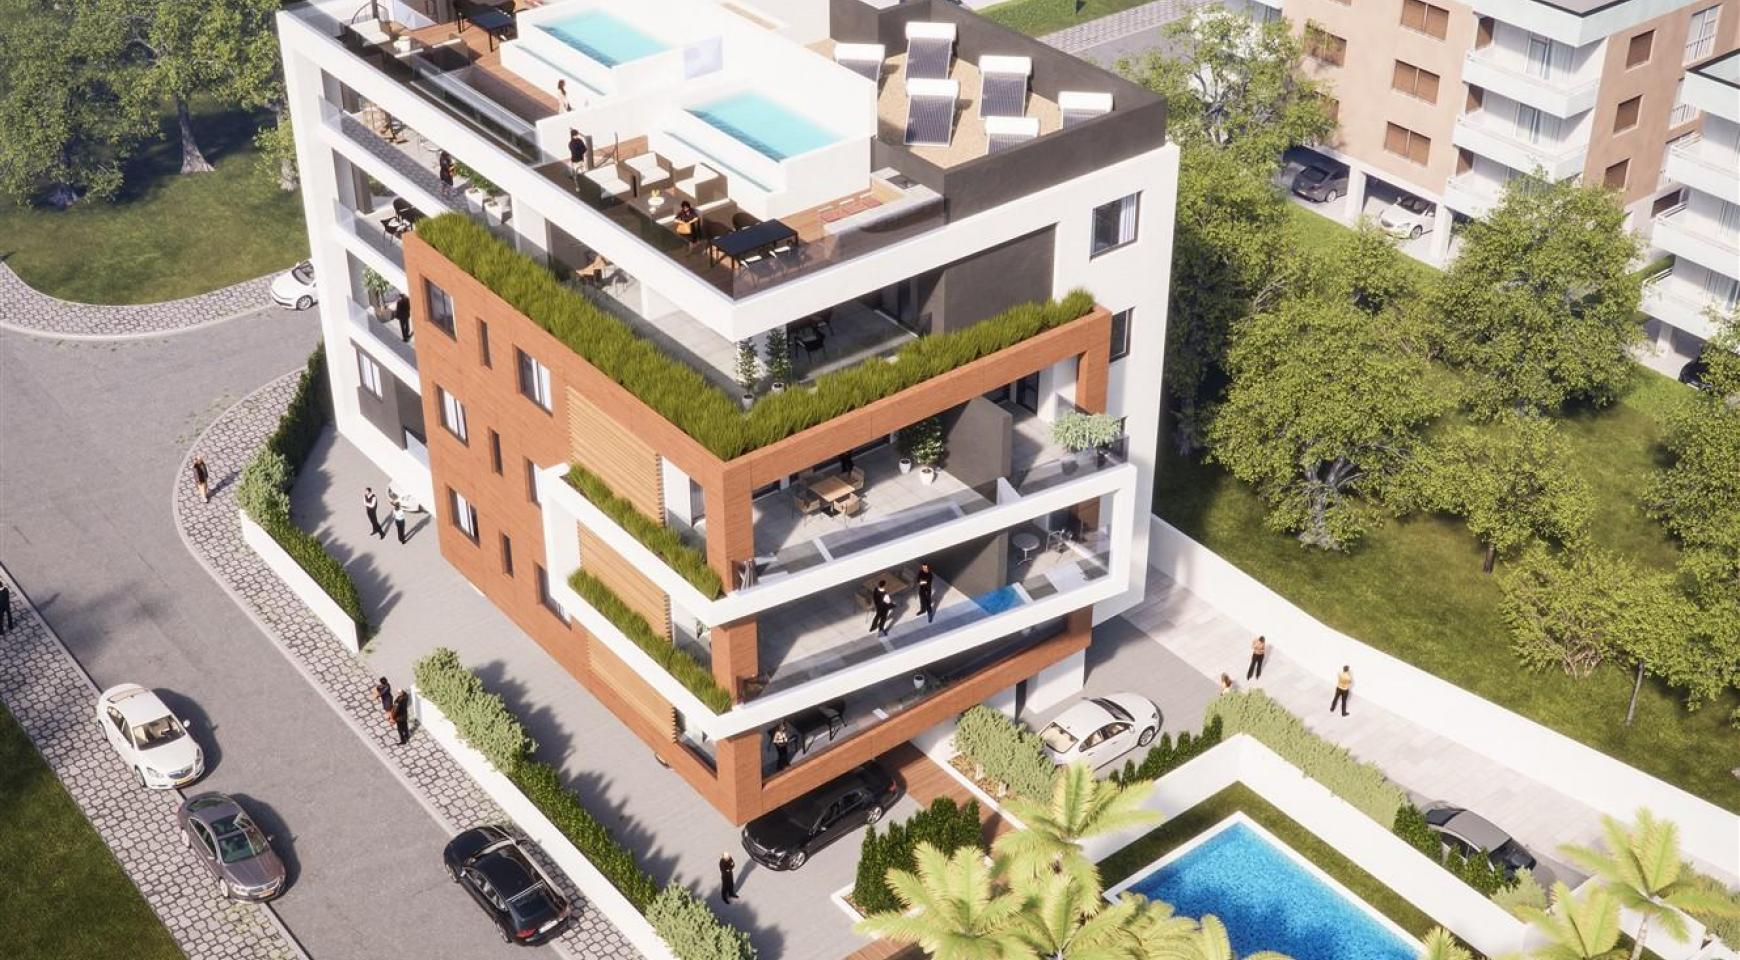 Malibu Residence. New Modern 3 Bedroom Apartment 202 in a Luxury Complex - 1